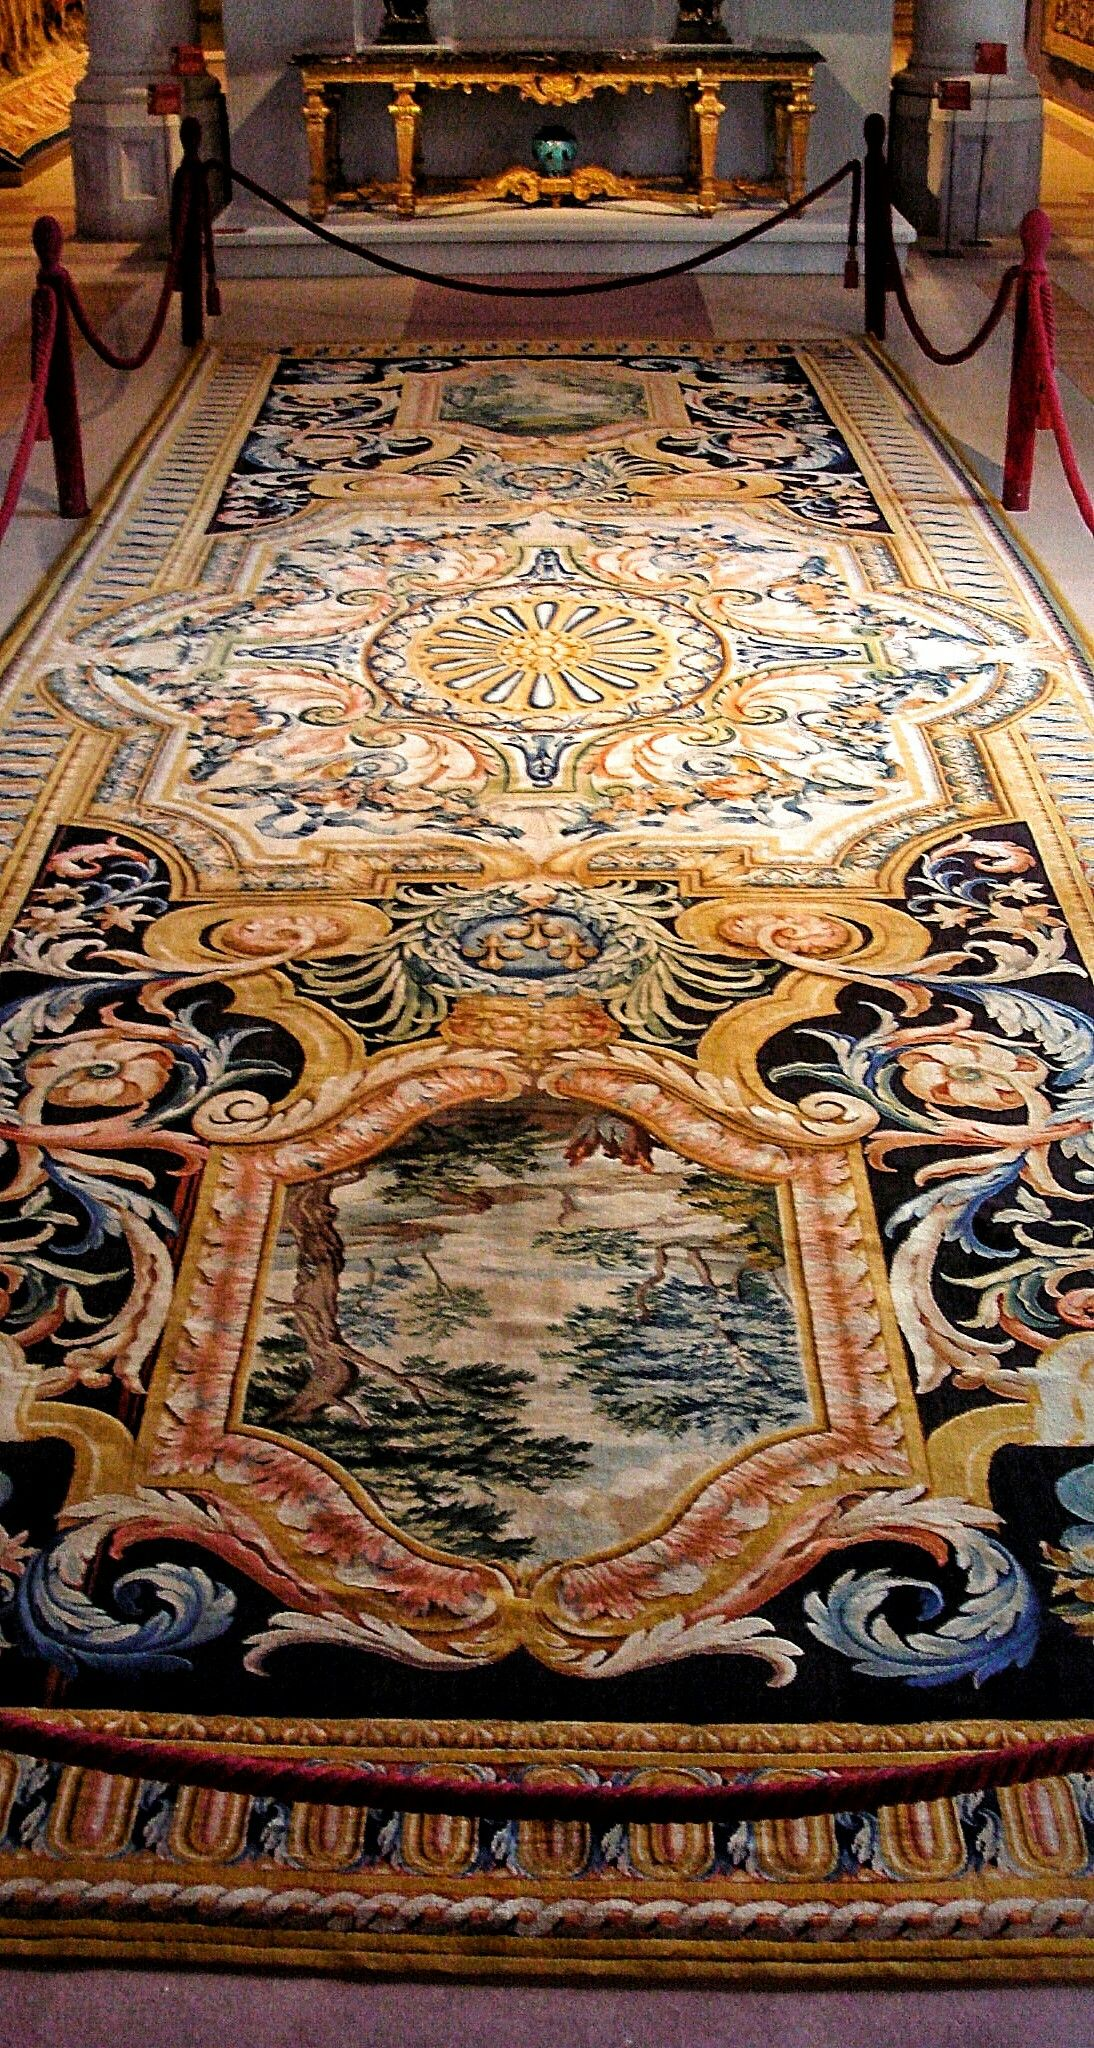 Grande Gallerie Du Louvre Carpet No69 Made In The Savonnerie Between 1670 And 1685 On Display At The Gobelins Manufactory Tapis Persan Savonnerie Antiquite